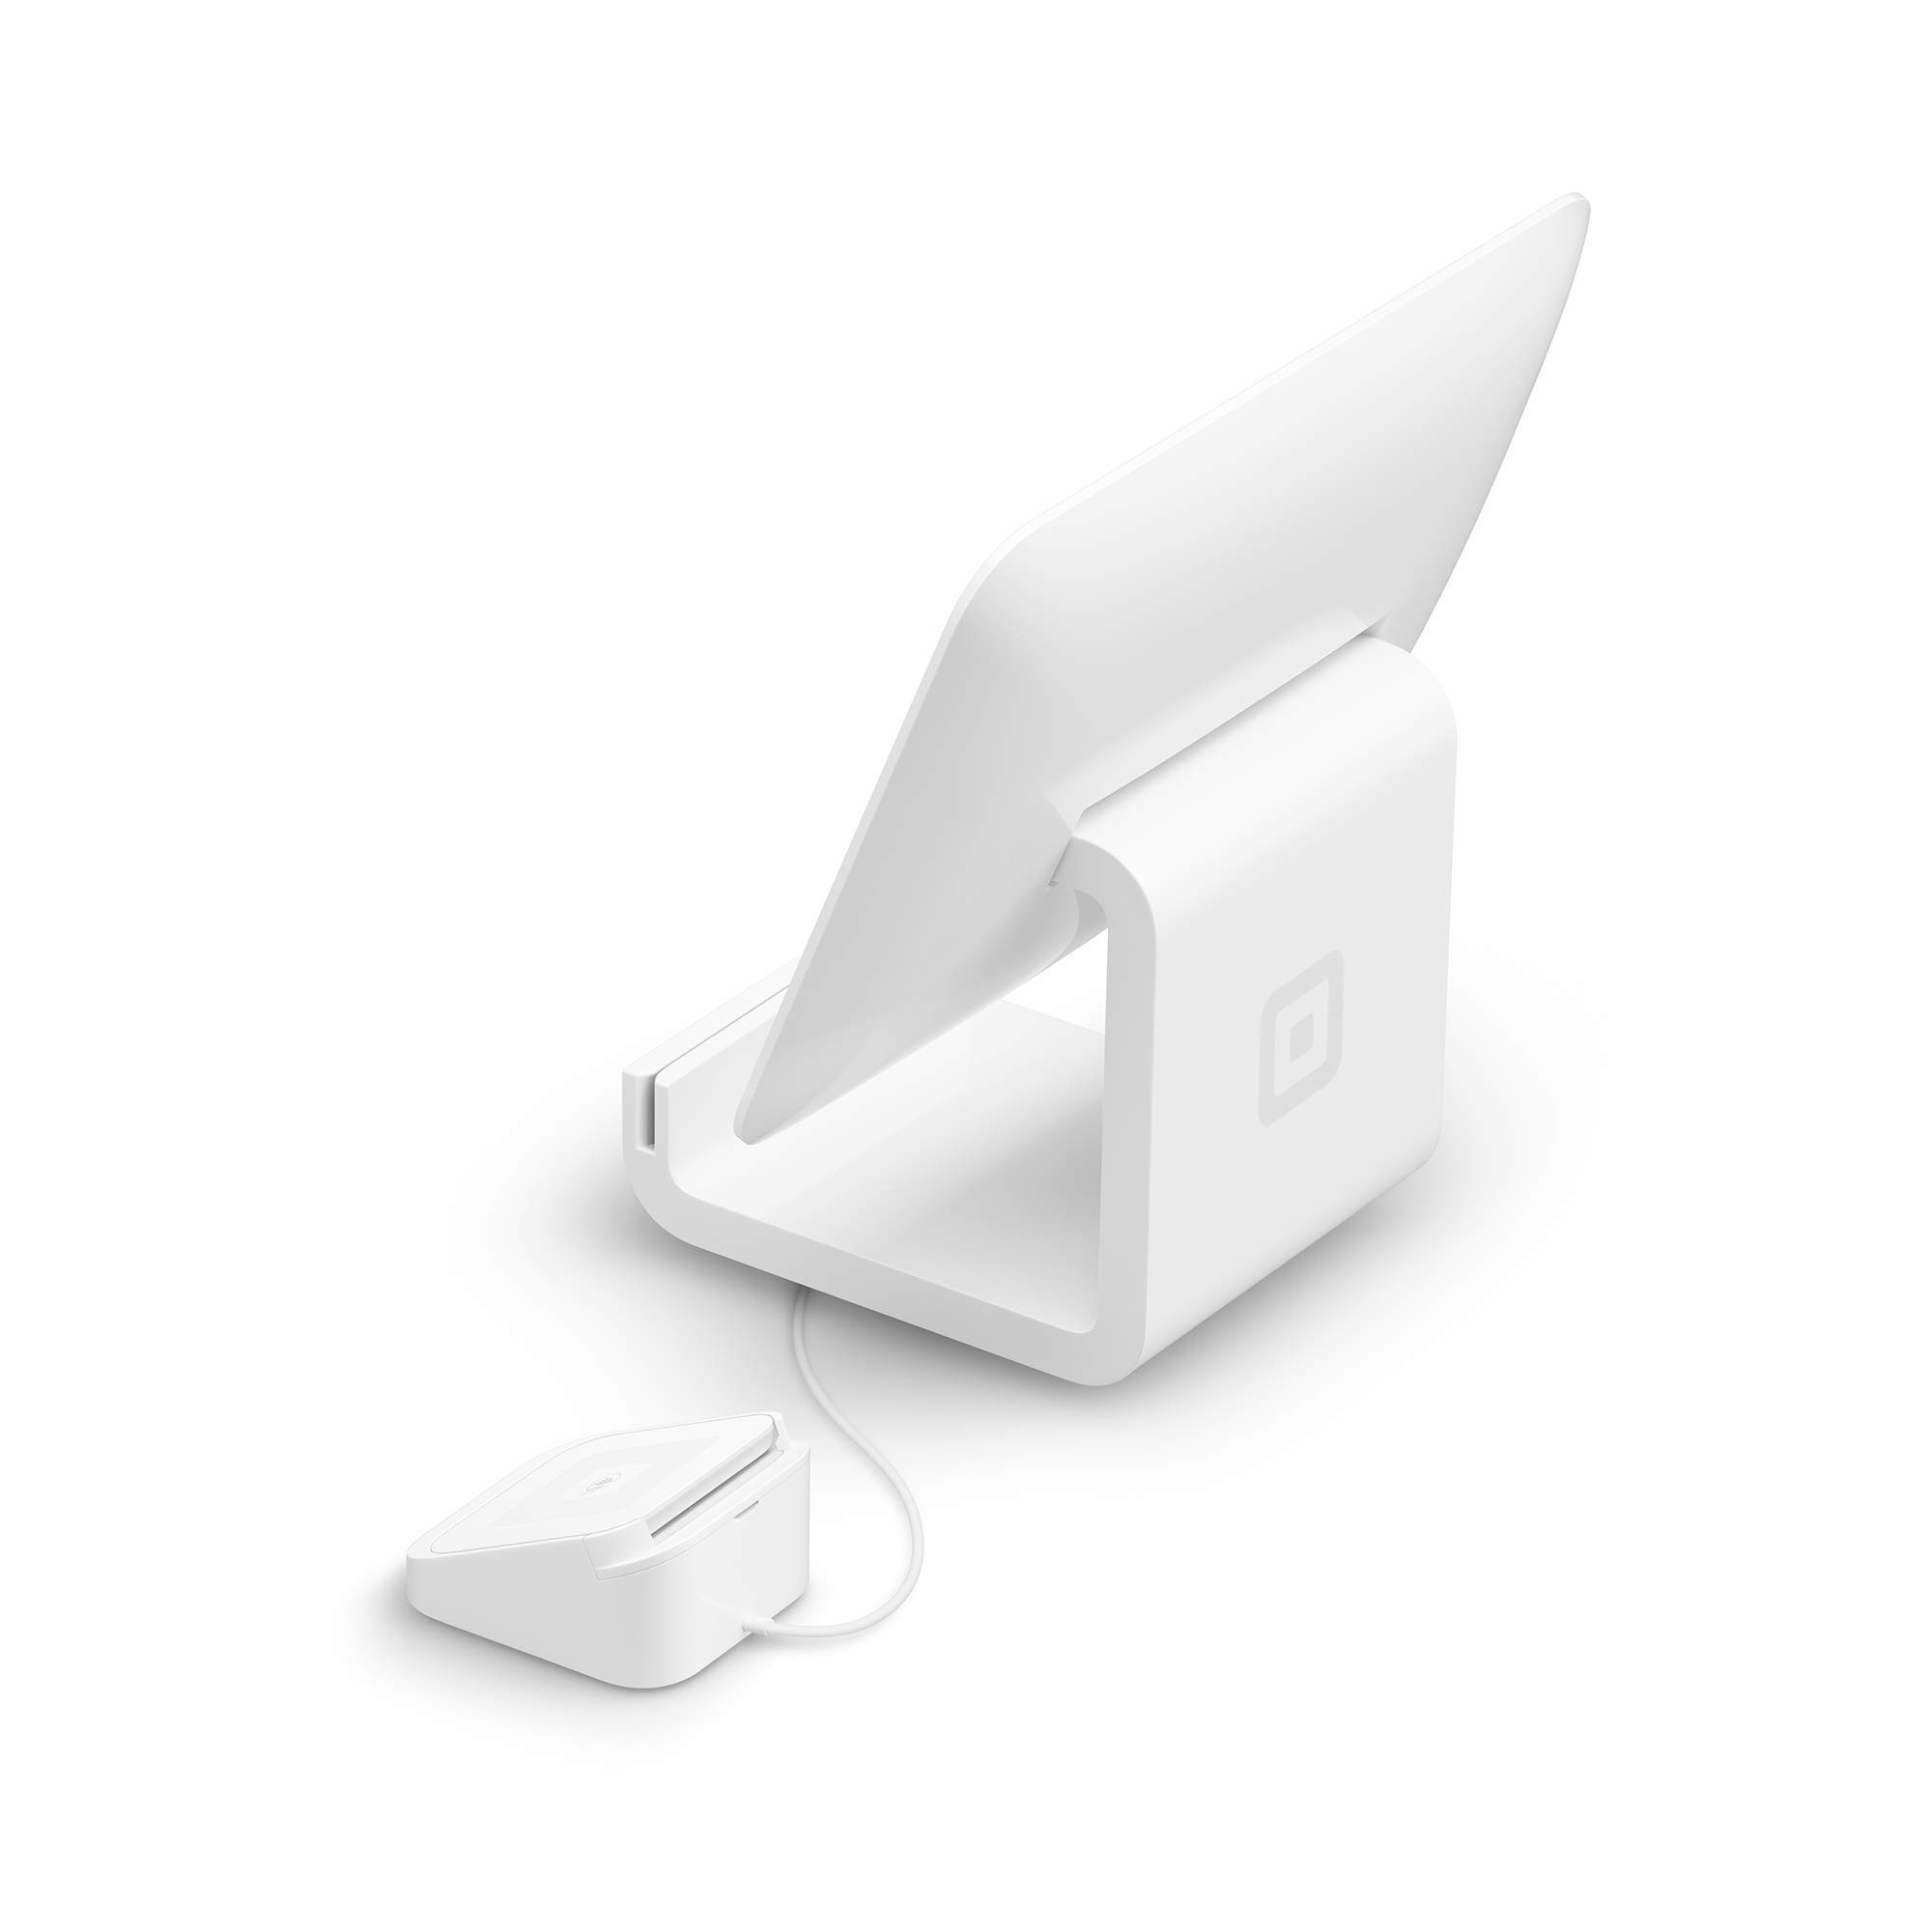 Square Stand for contactless and chip for iPad (2017, 2018), iPad Pro 9.7in, and iPad Air (1, 2) (Renewed) by Square (Image #4)